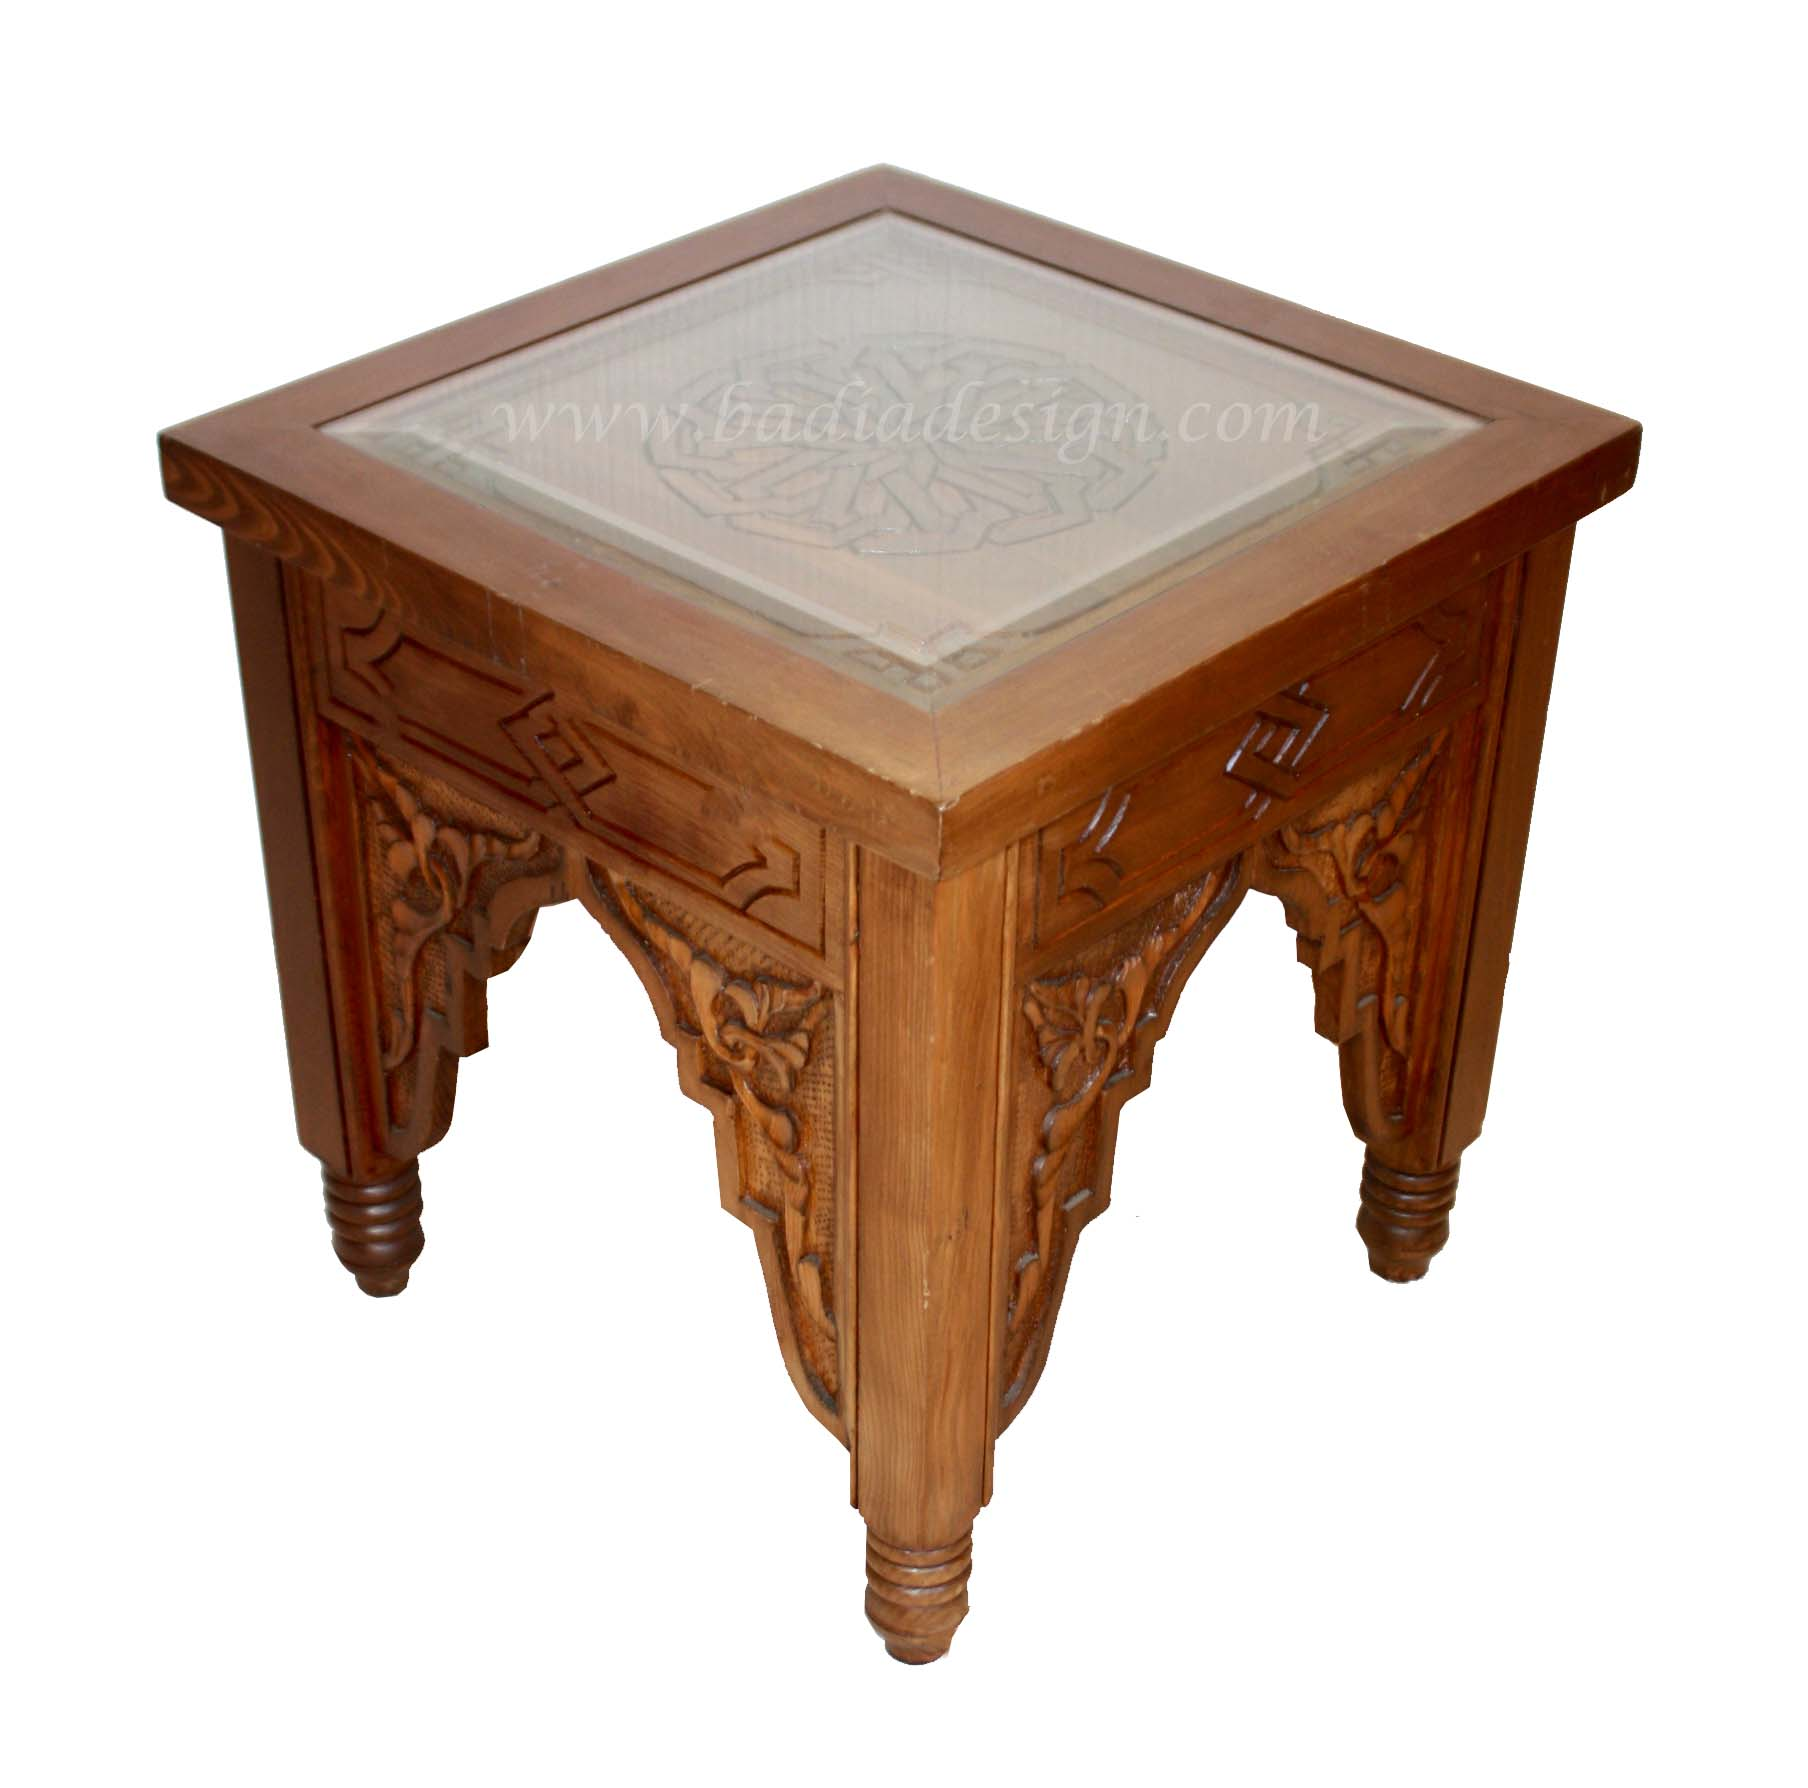 Moroccan Carved Wood Side Table with Glass Top from Badia Design Inc